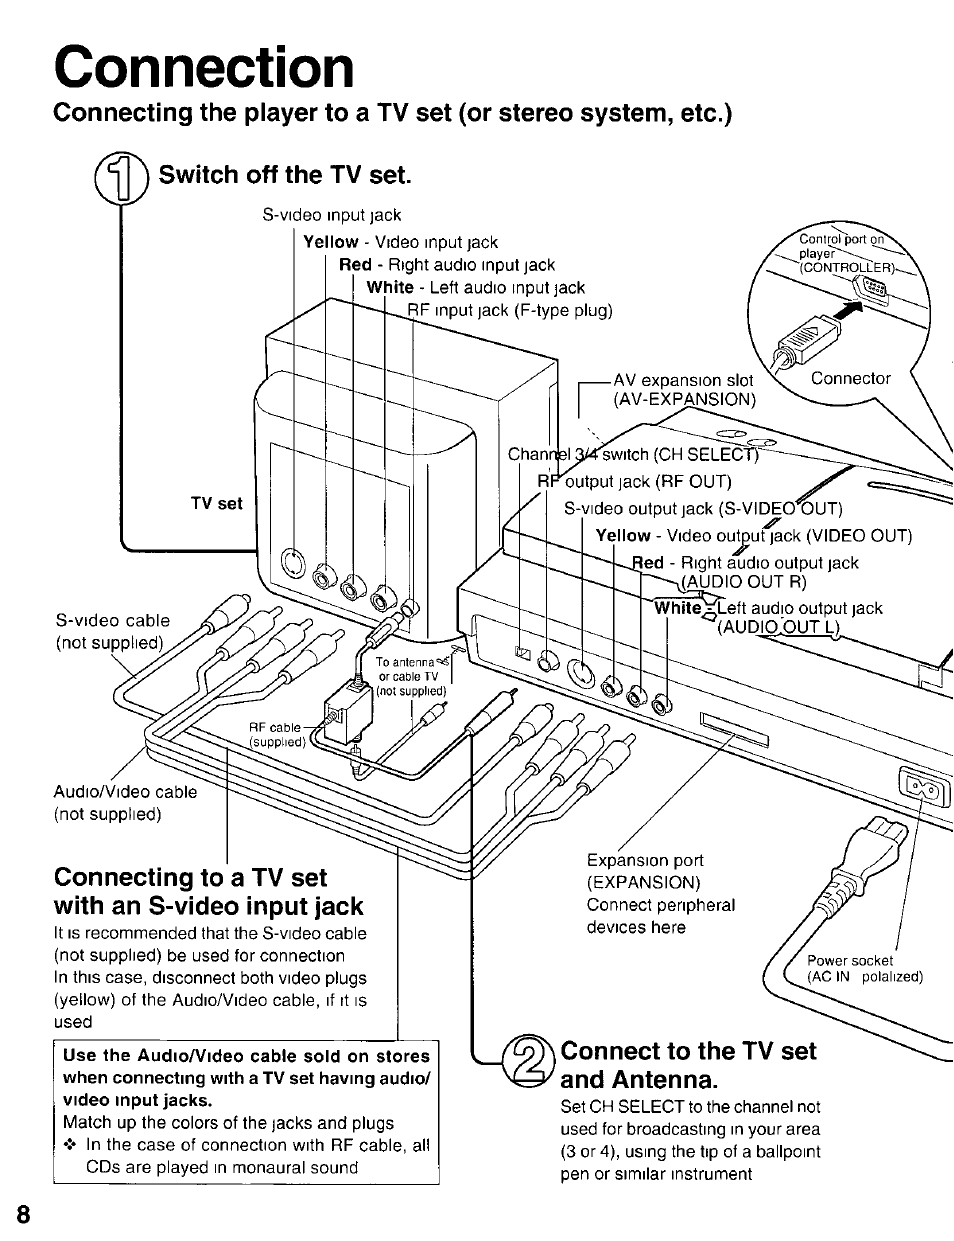 Connecting to a tv set with an s-video input jack